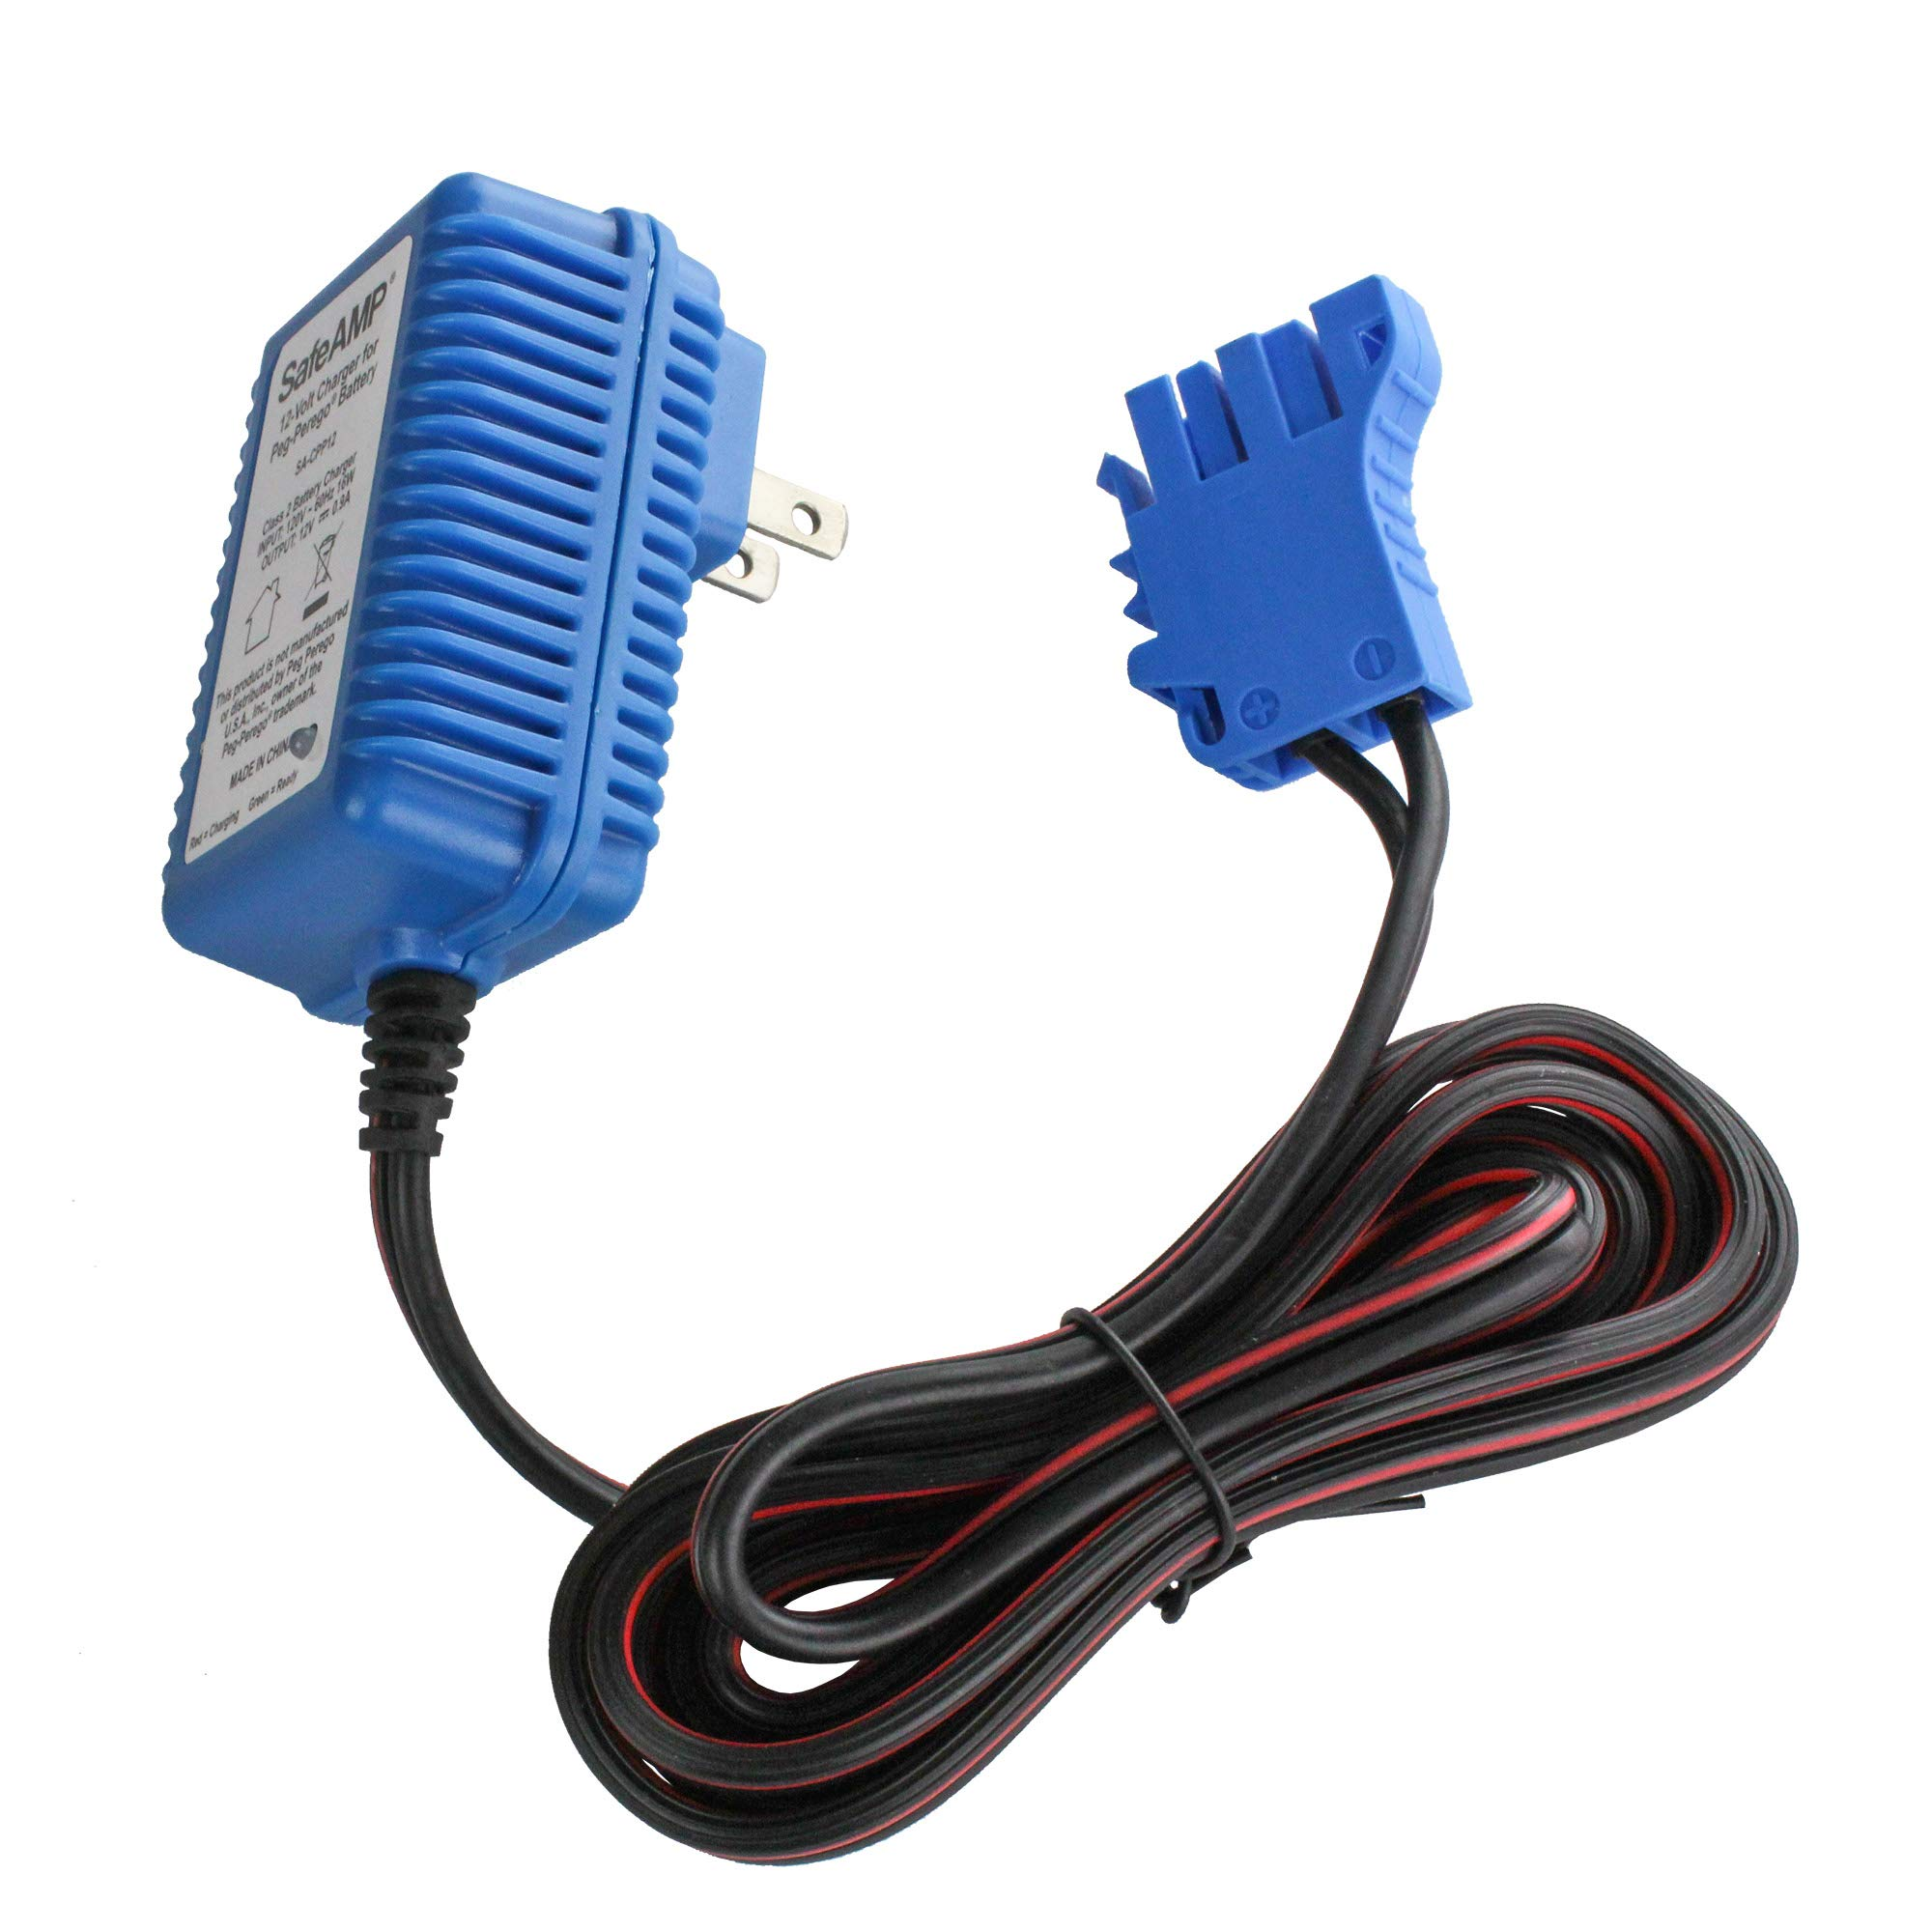 Phenomenal Galleon Safeamp 12 Volt Charger For Peg Perego Battery Wiring Cloud Hisonuggs Outletorg